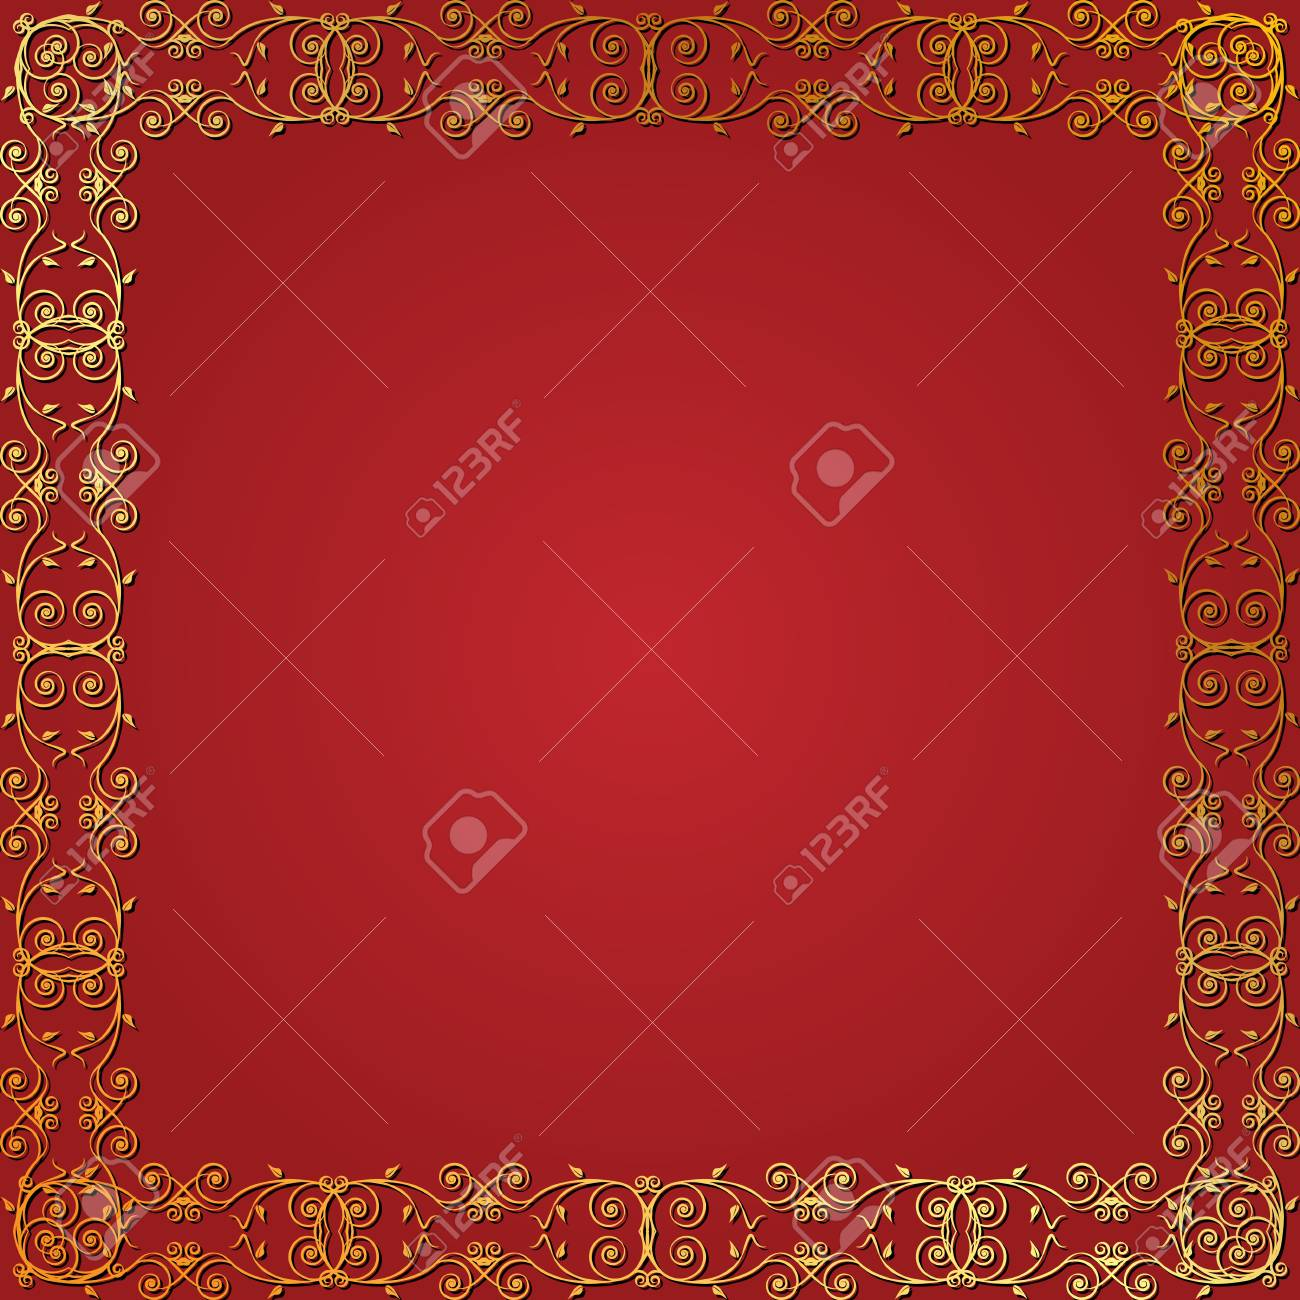 Seamless gold floral frame on a red background Stock Vector - 17999305